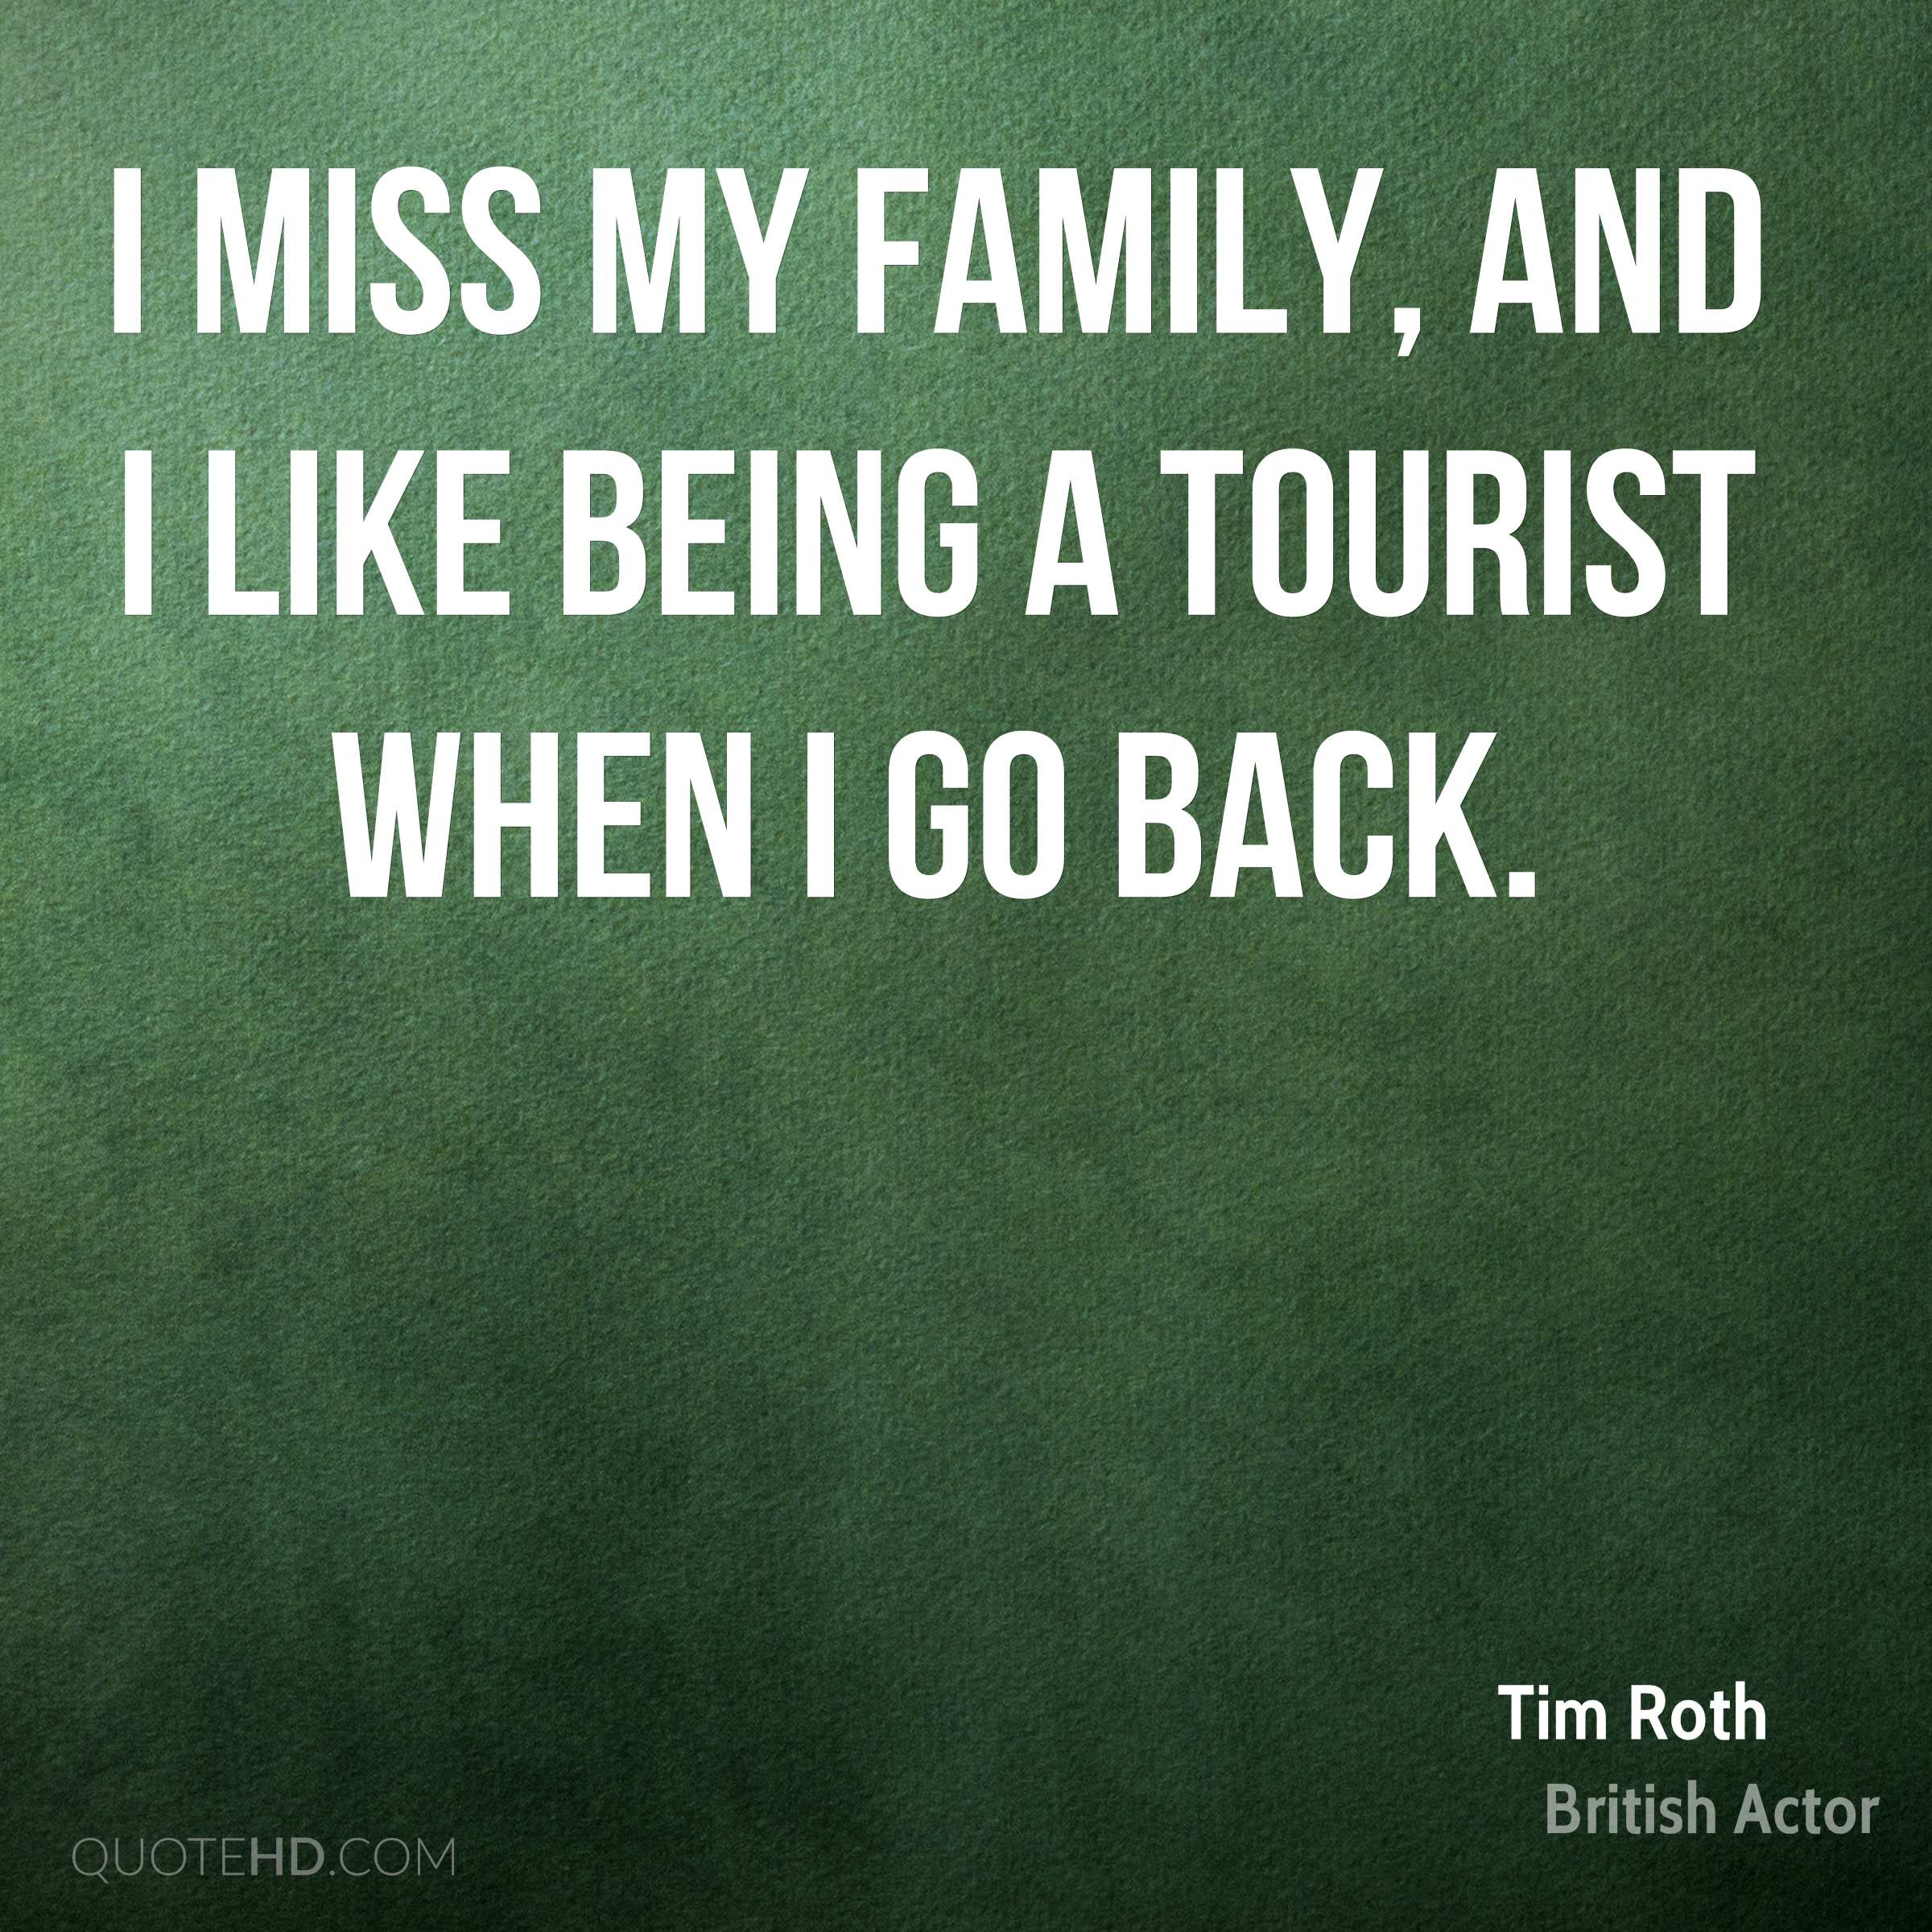 Tim Roth Family Quotes | QuoteHD